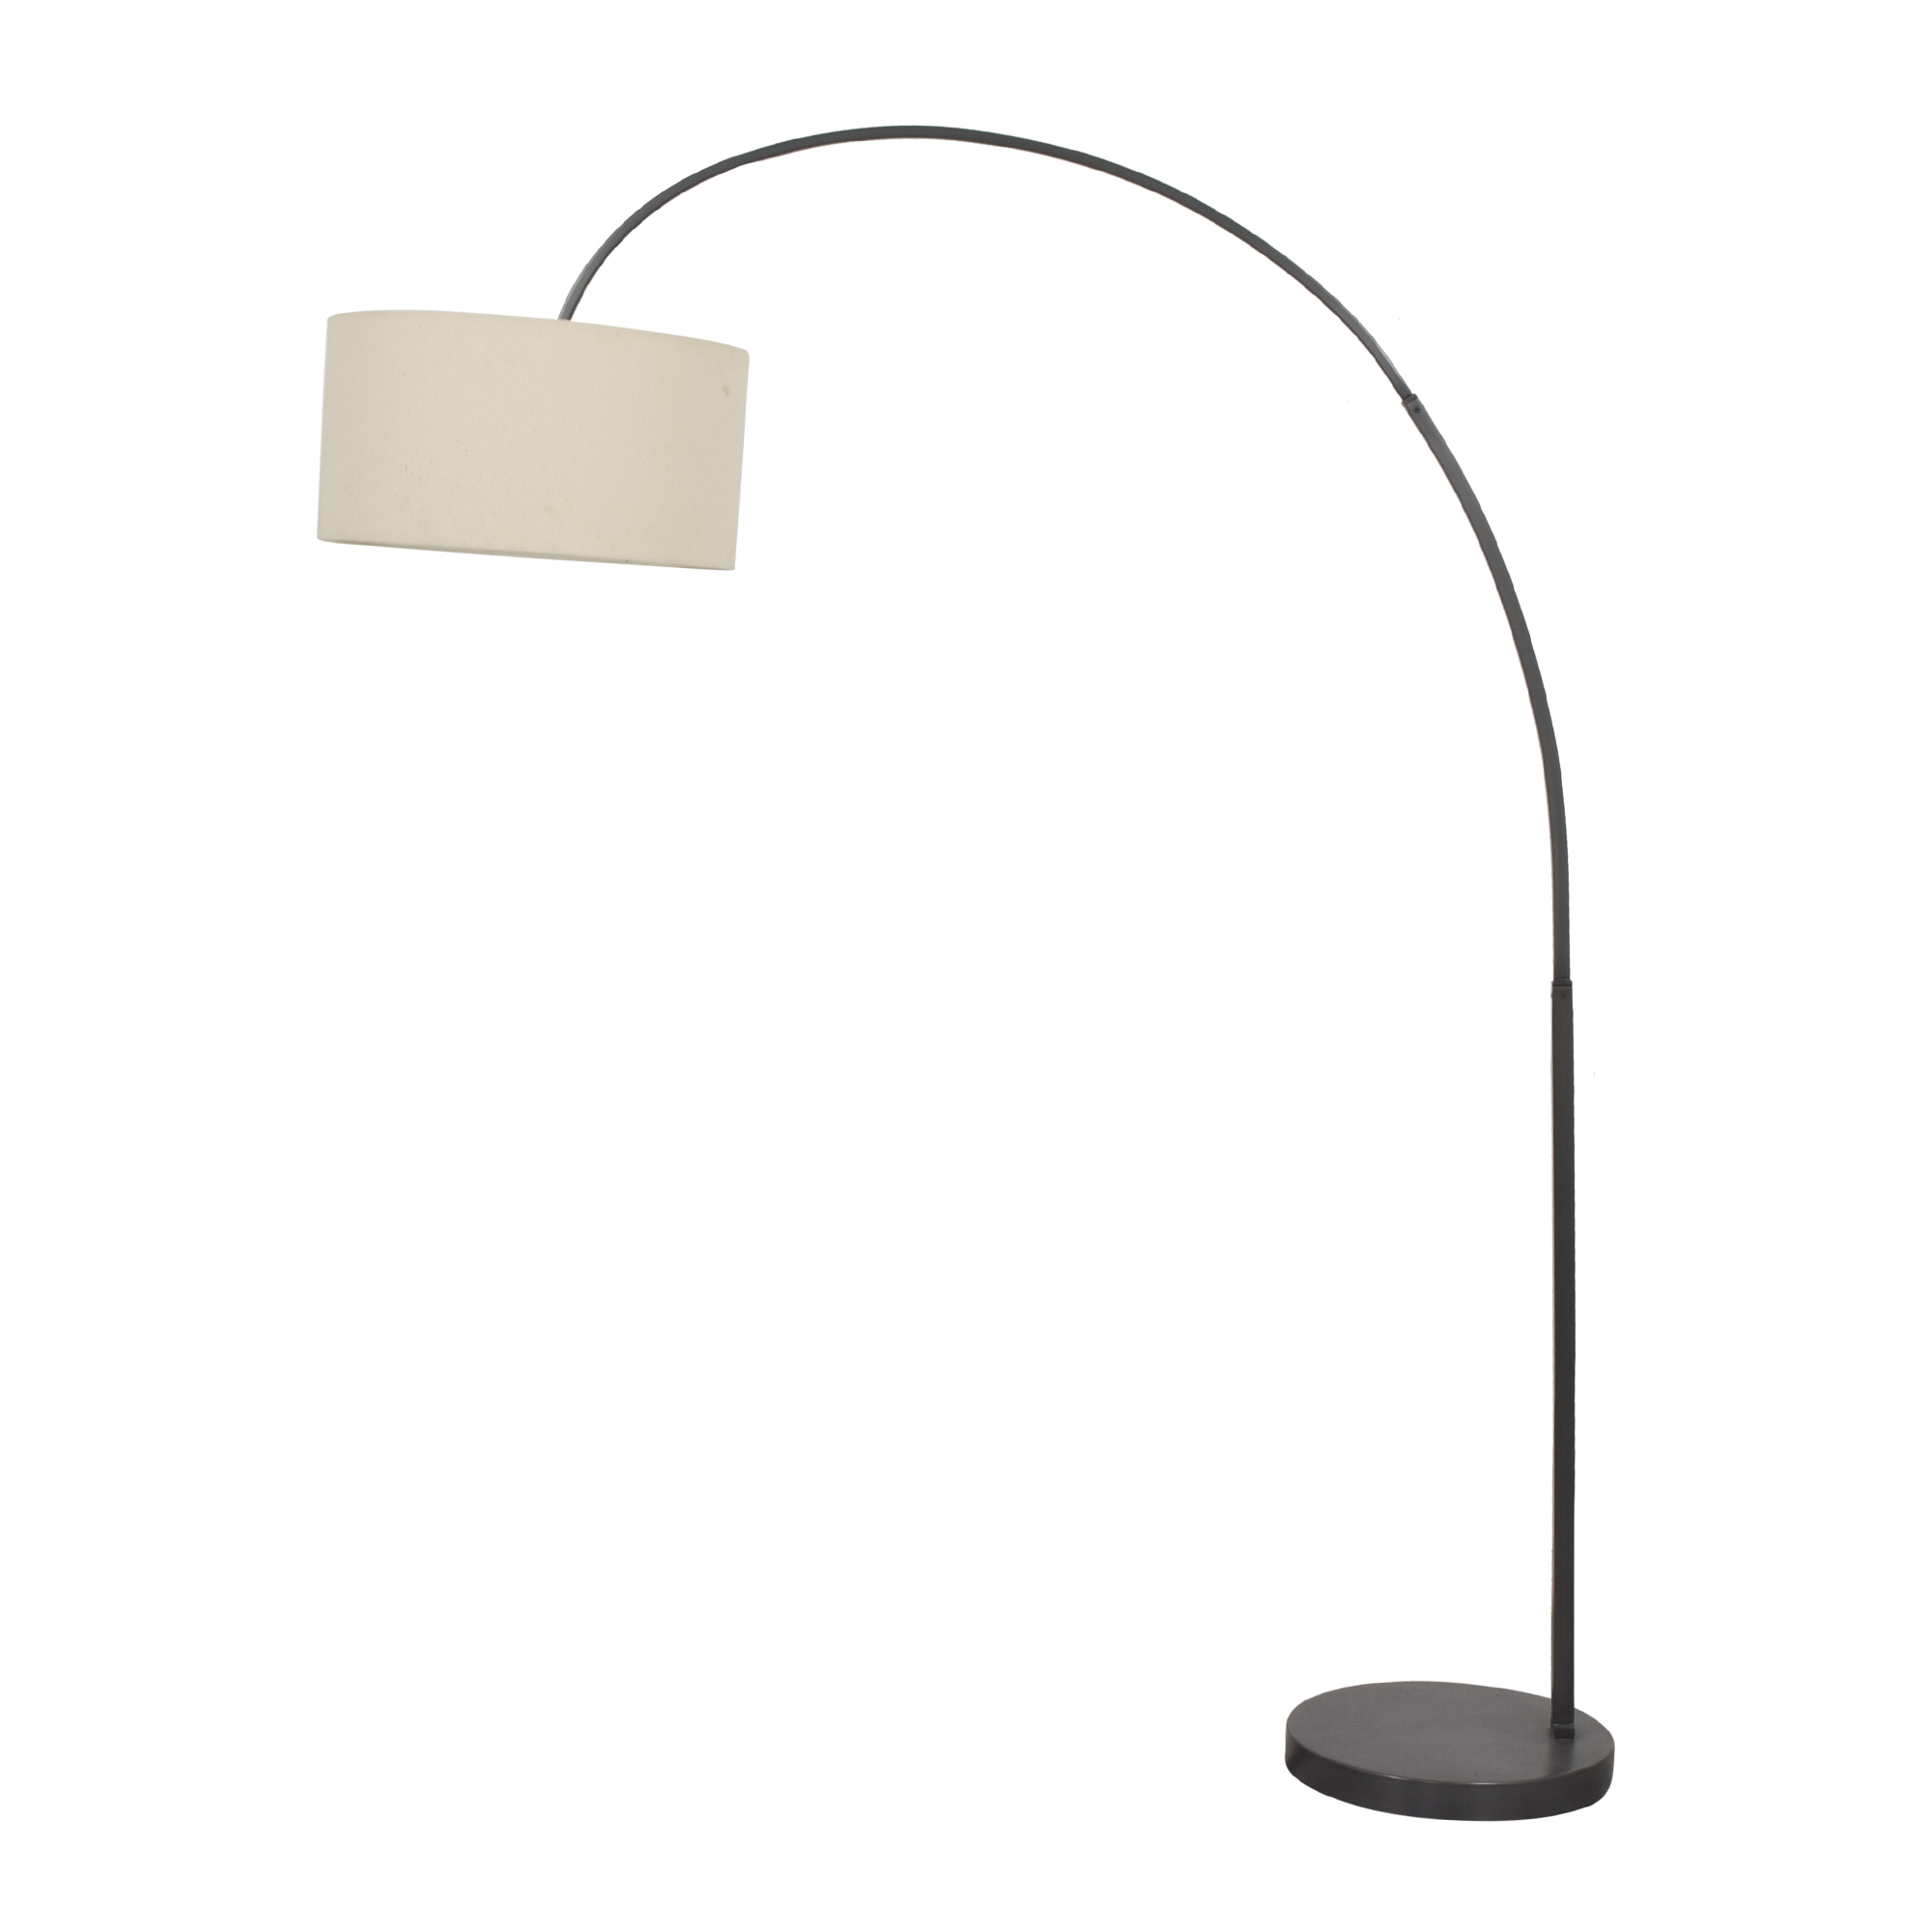 West Elm West Elm Overarching Floor Lamp second hand